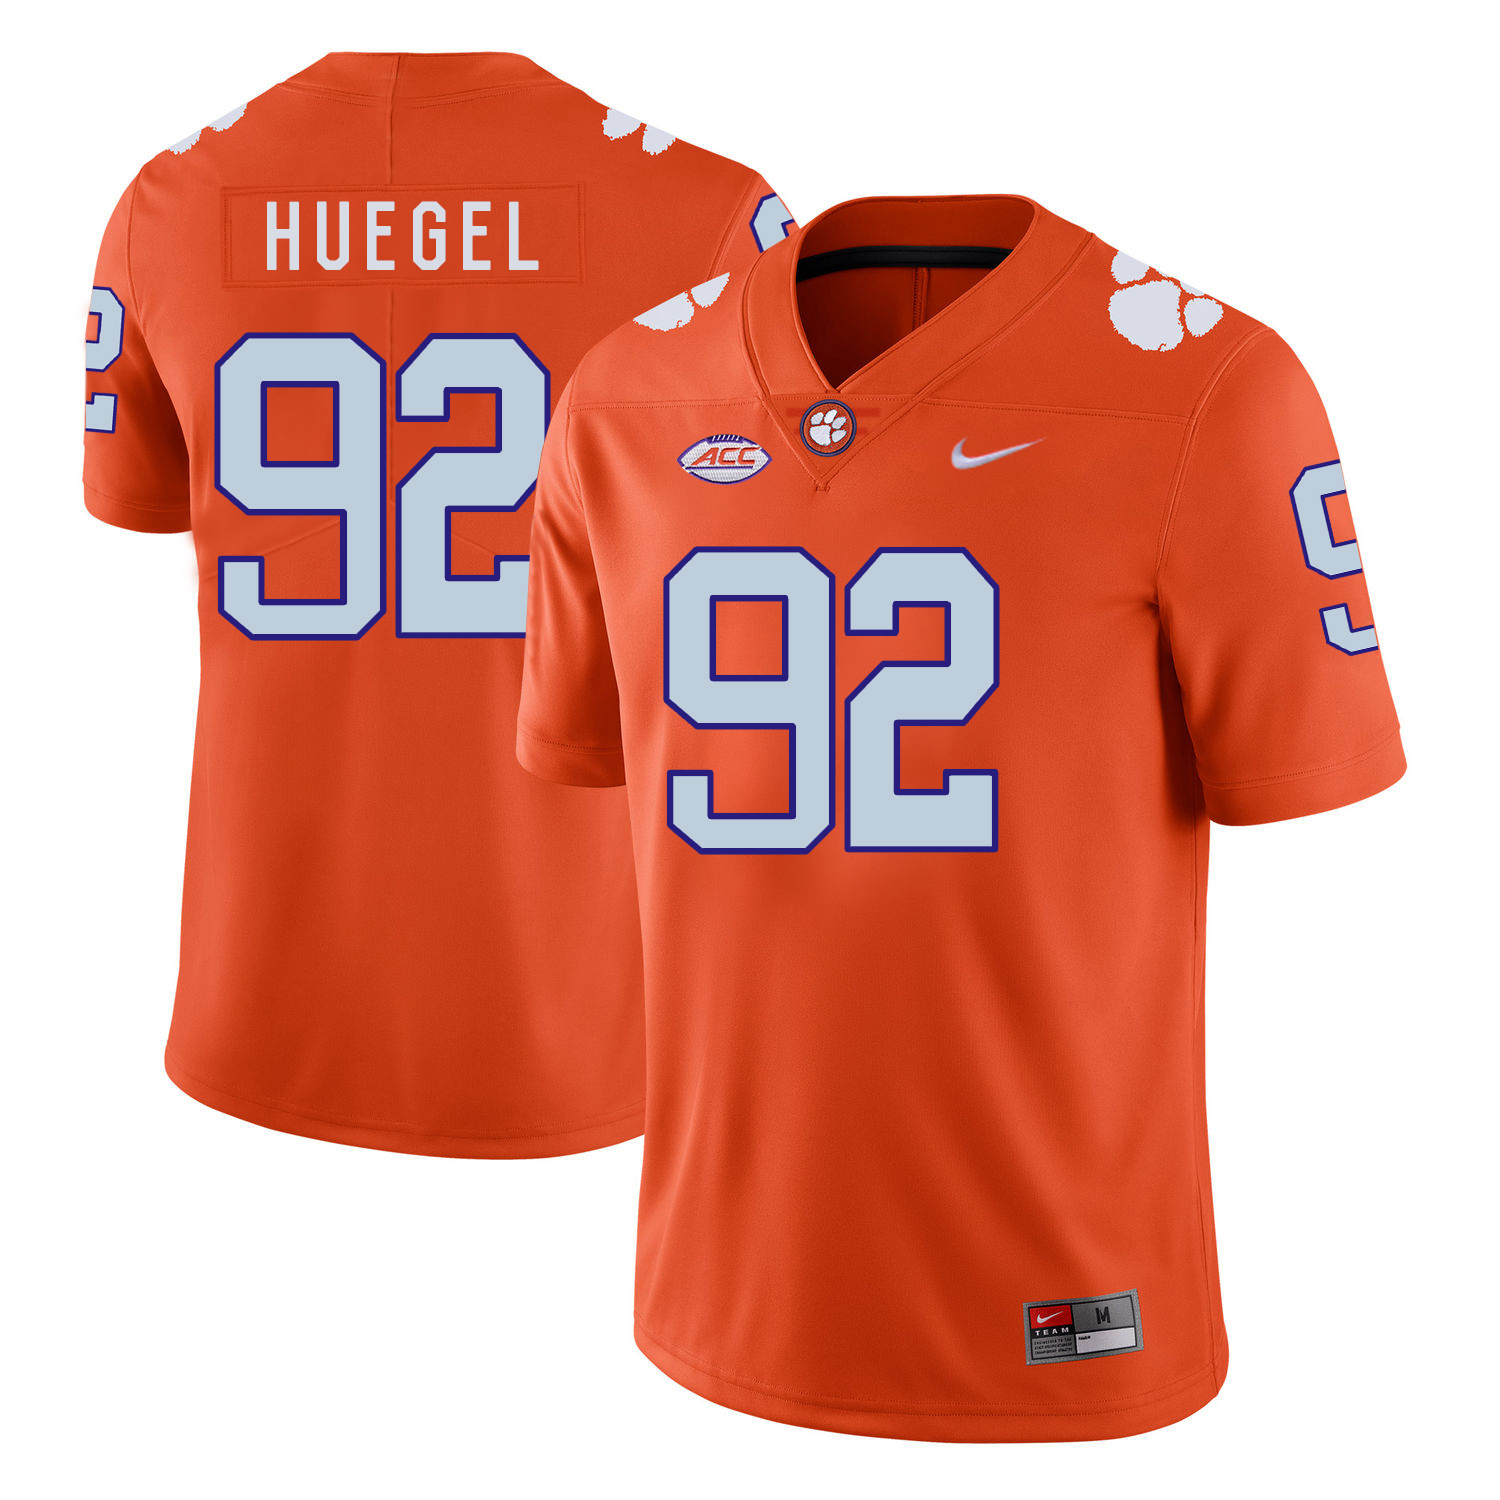 Clemson Tigers 92 Greg Huegel Orange Nike College Football Jersey